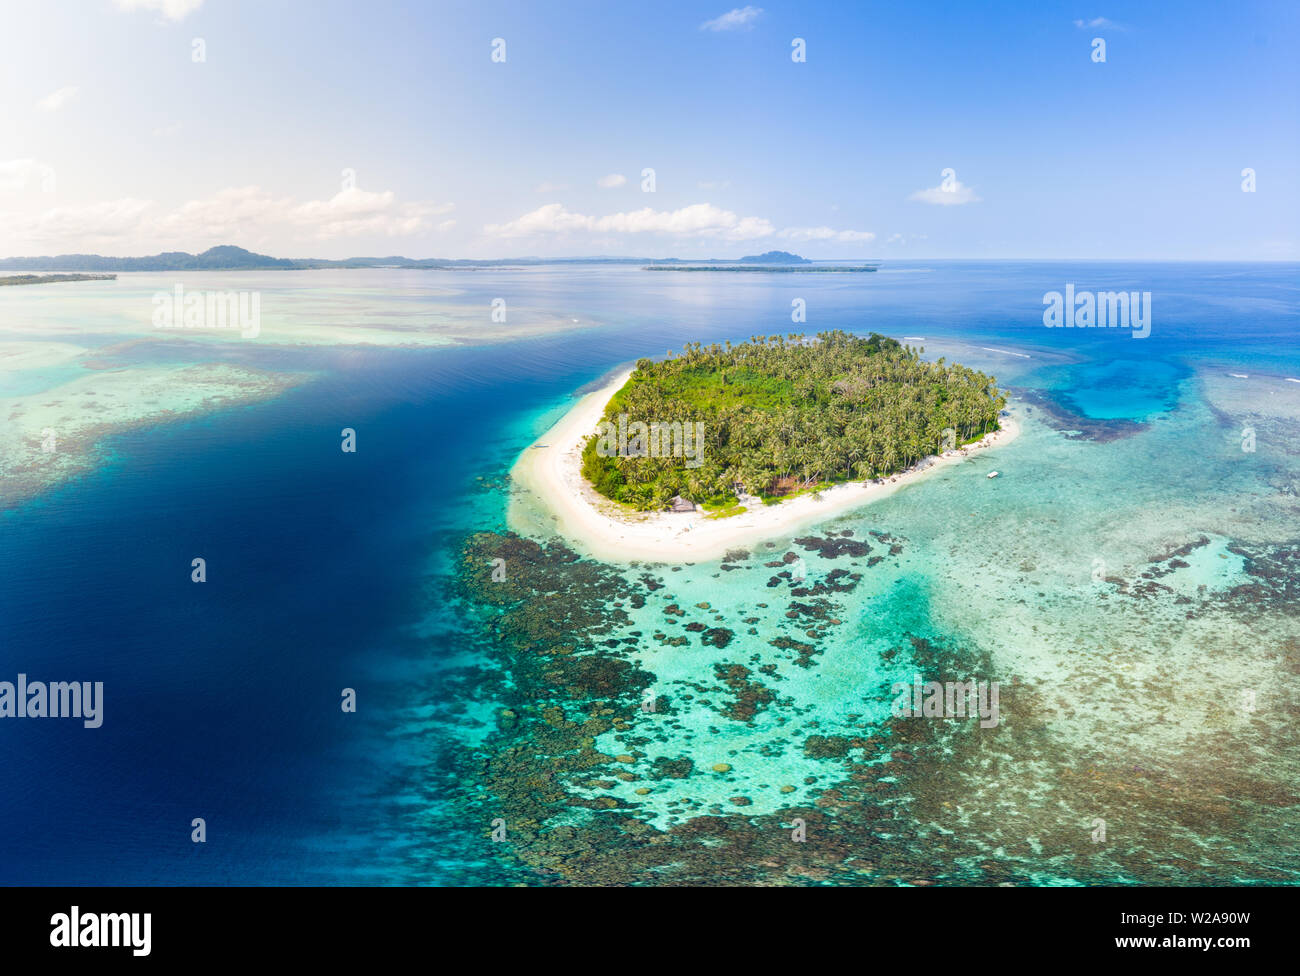 Spice Islands Indonesia Stock Photos & Spice Islands Indonesia Stock